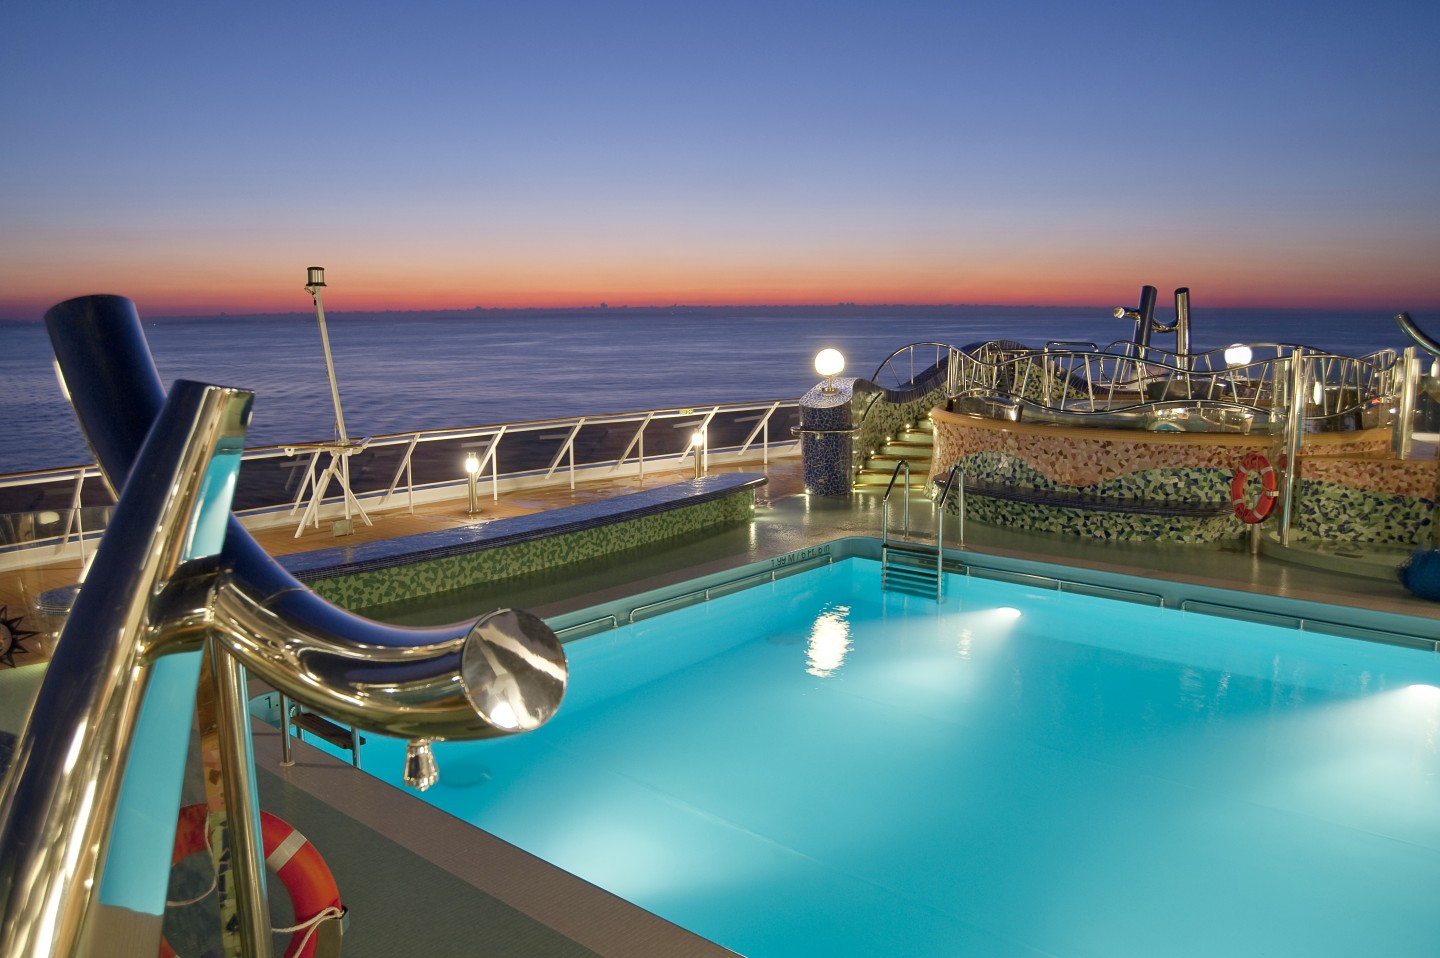 Leisure facilities on MSC Splendida - Greatdays Travel Group